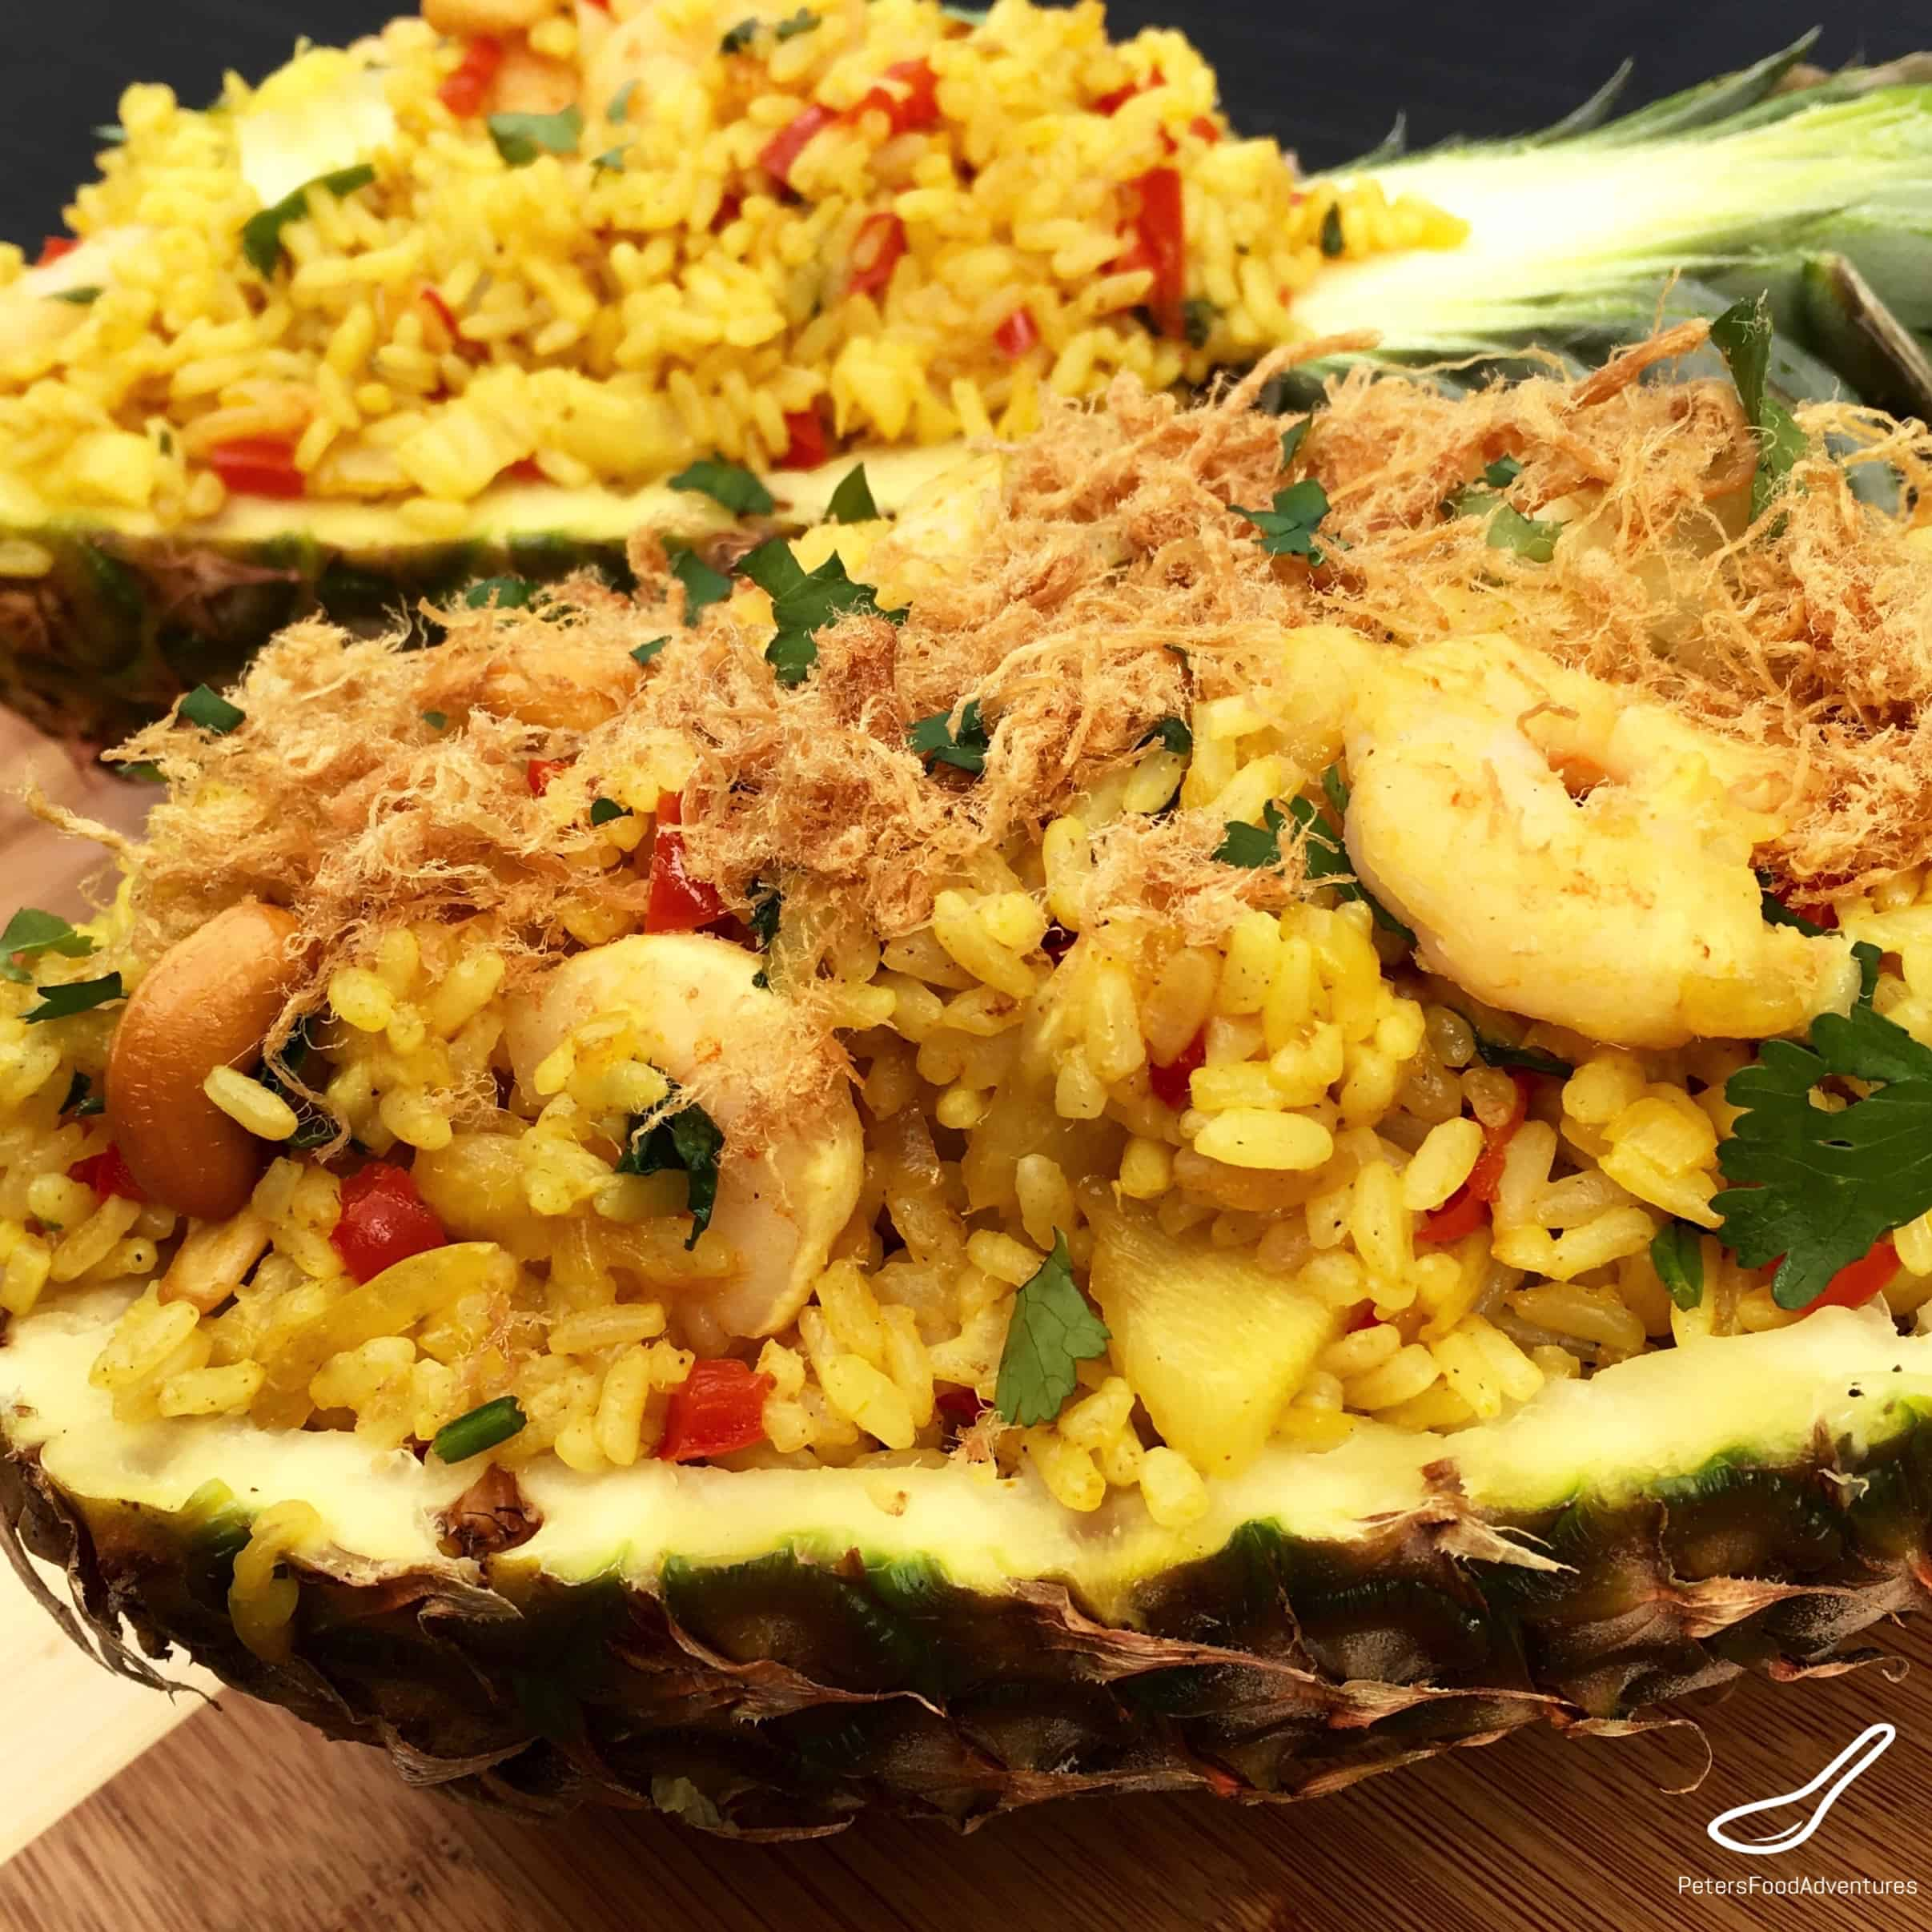 Pineapple fried rice peters food adventures authentic thai pineapple fried rice easy to make and delicious ccuart Gallery